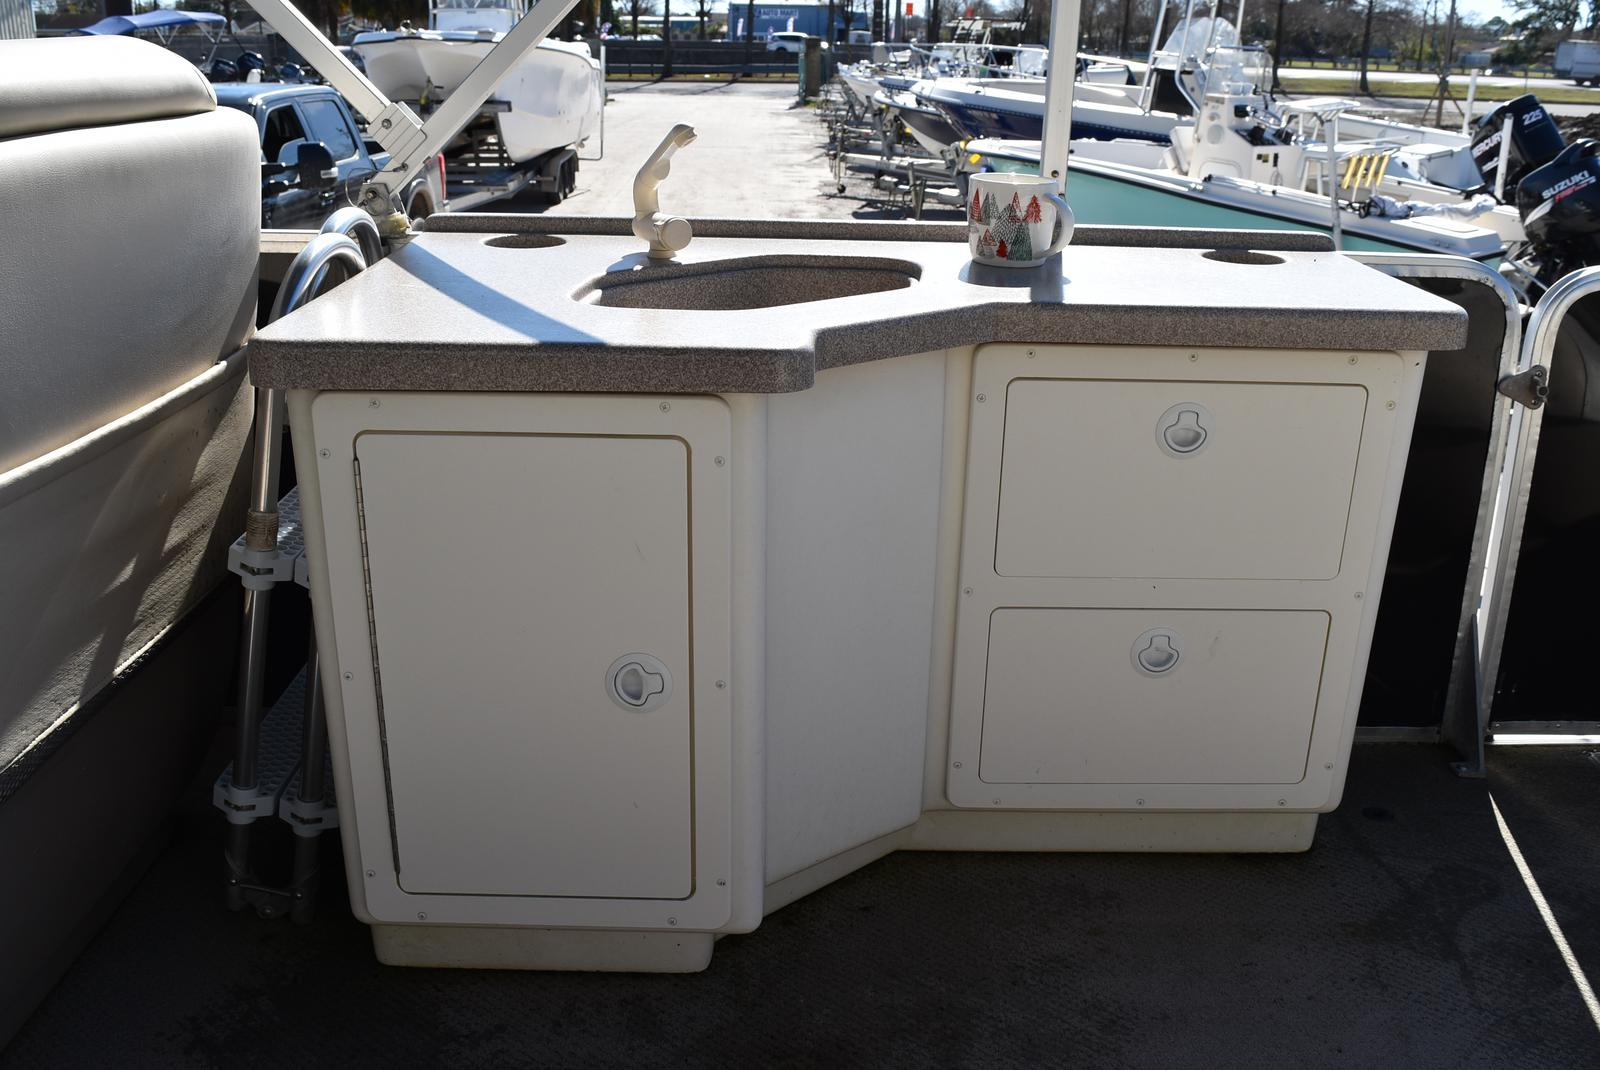 2001 Regency boat for sale, model of the boat is 27 Party Barge & Image # 10 of 12